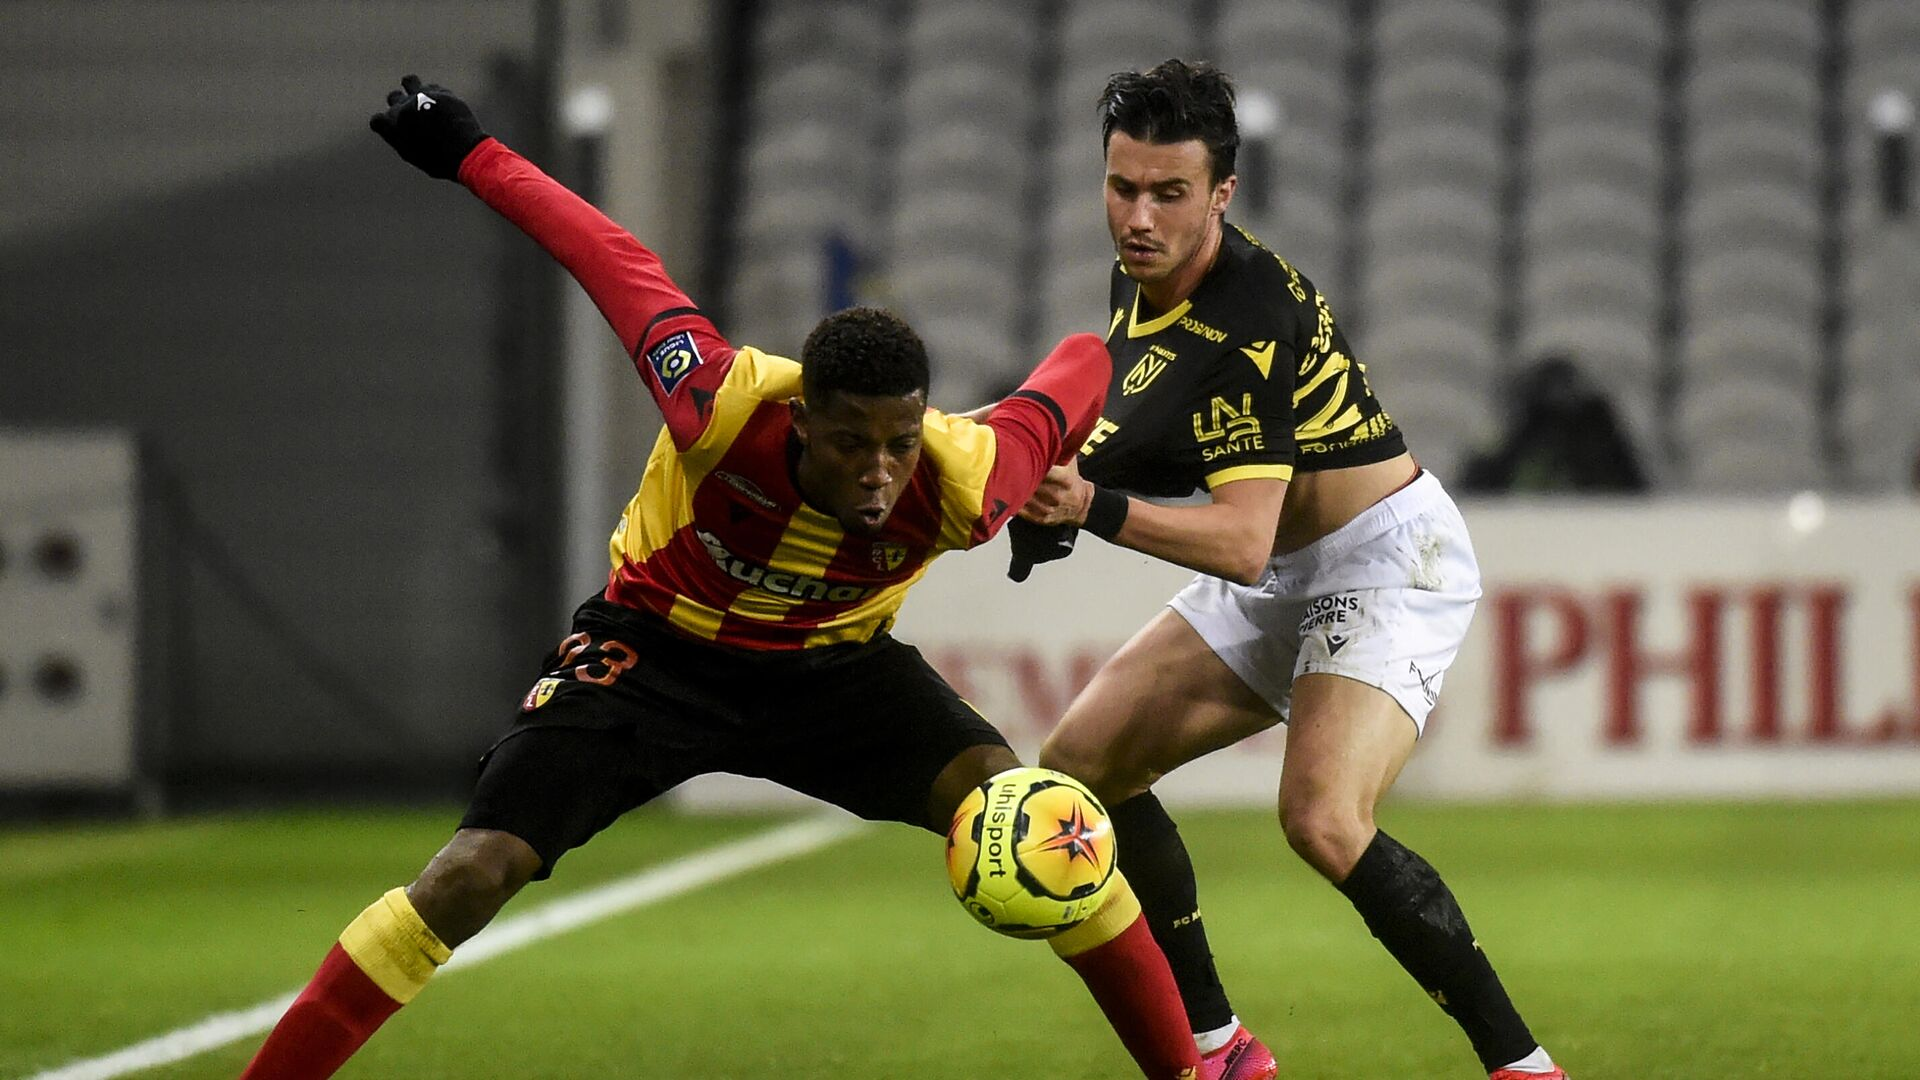 Lens' French forward Simon Banza (L) fights for the ball with Nantes' French midfielder Ludovic Blas during the French L1 football match between RC Lens and FC Nantes at the Bollaert Stadium in Lens, on November 25, 2020. (Photo by FRANCOIS LO PRESTI / AFP) - РИА Новости, 1920, 25.11.2020